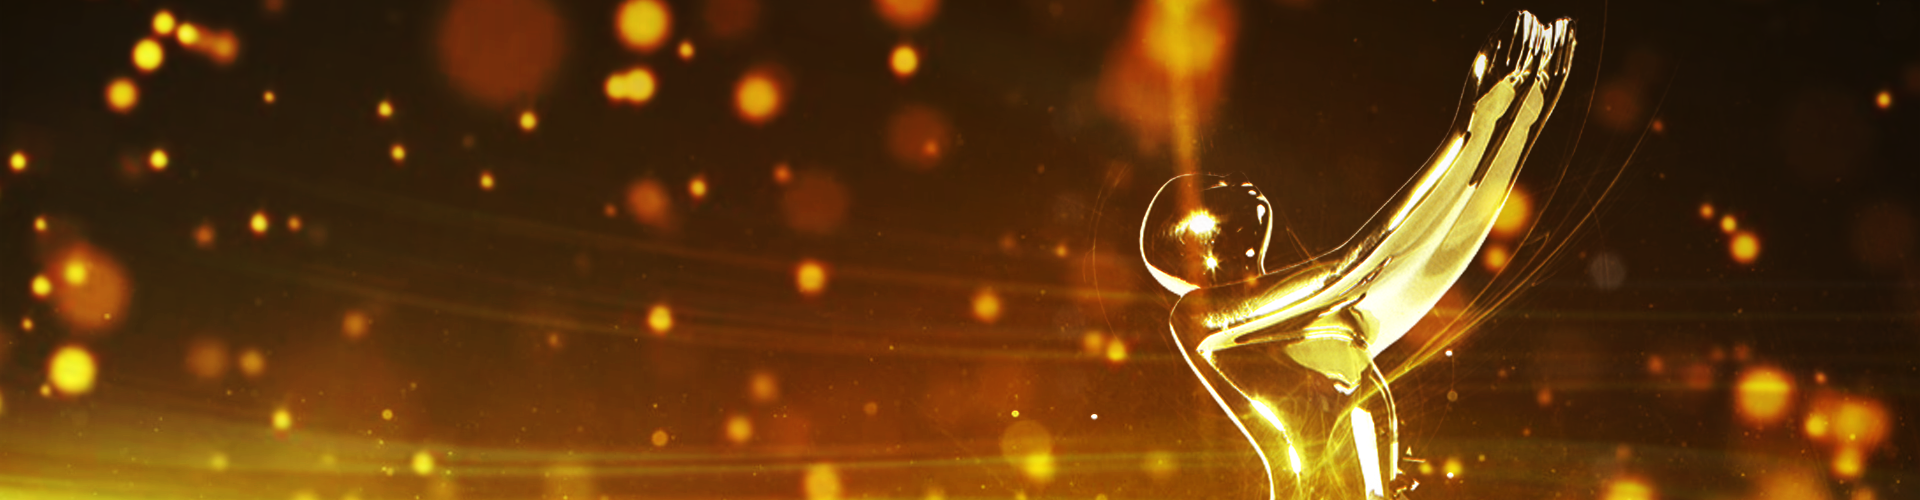 Promaxbda | Global Excellence Awards 2016 Finalists